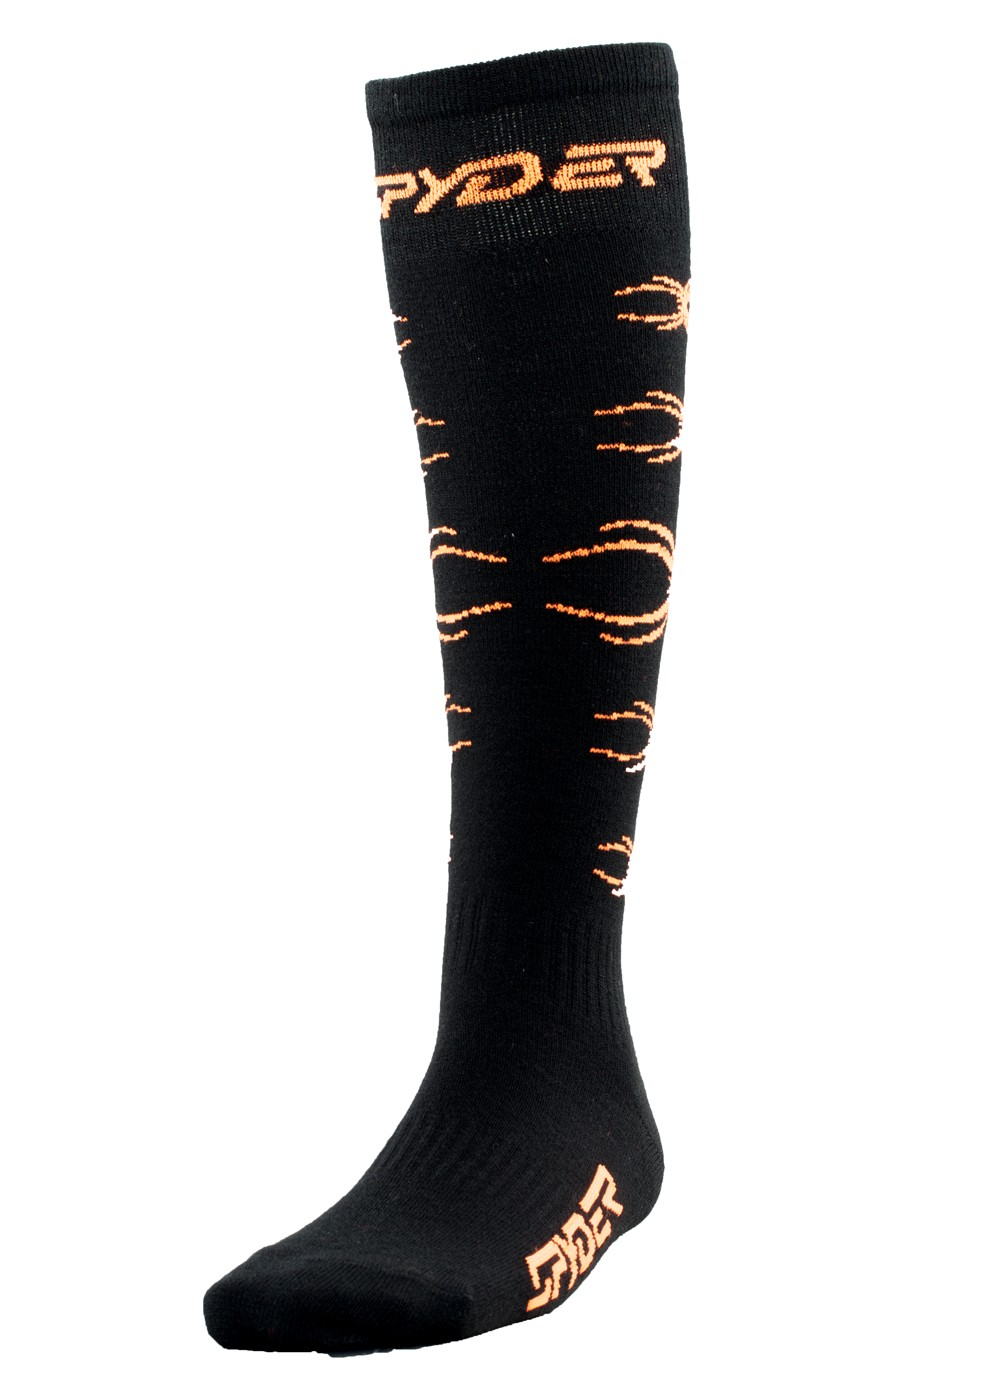 Spyder Boys Bug Out Sock (Black/Bryte Orange)